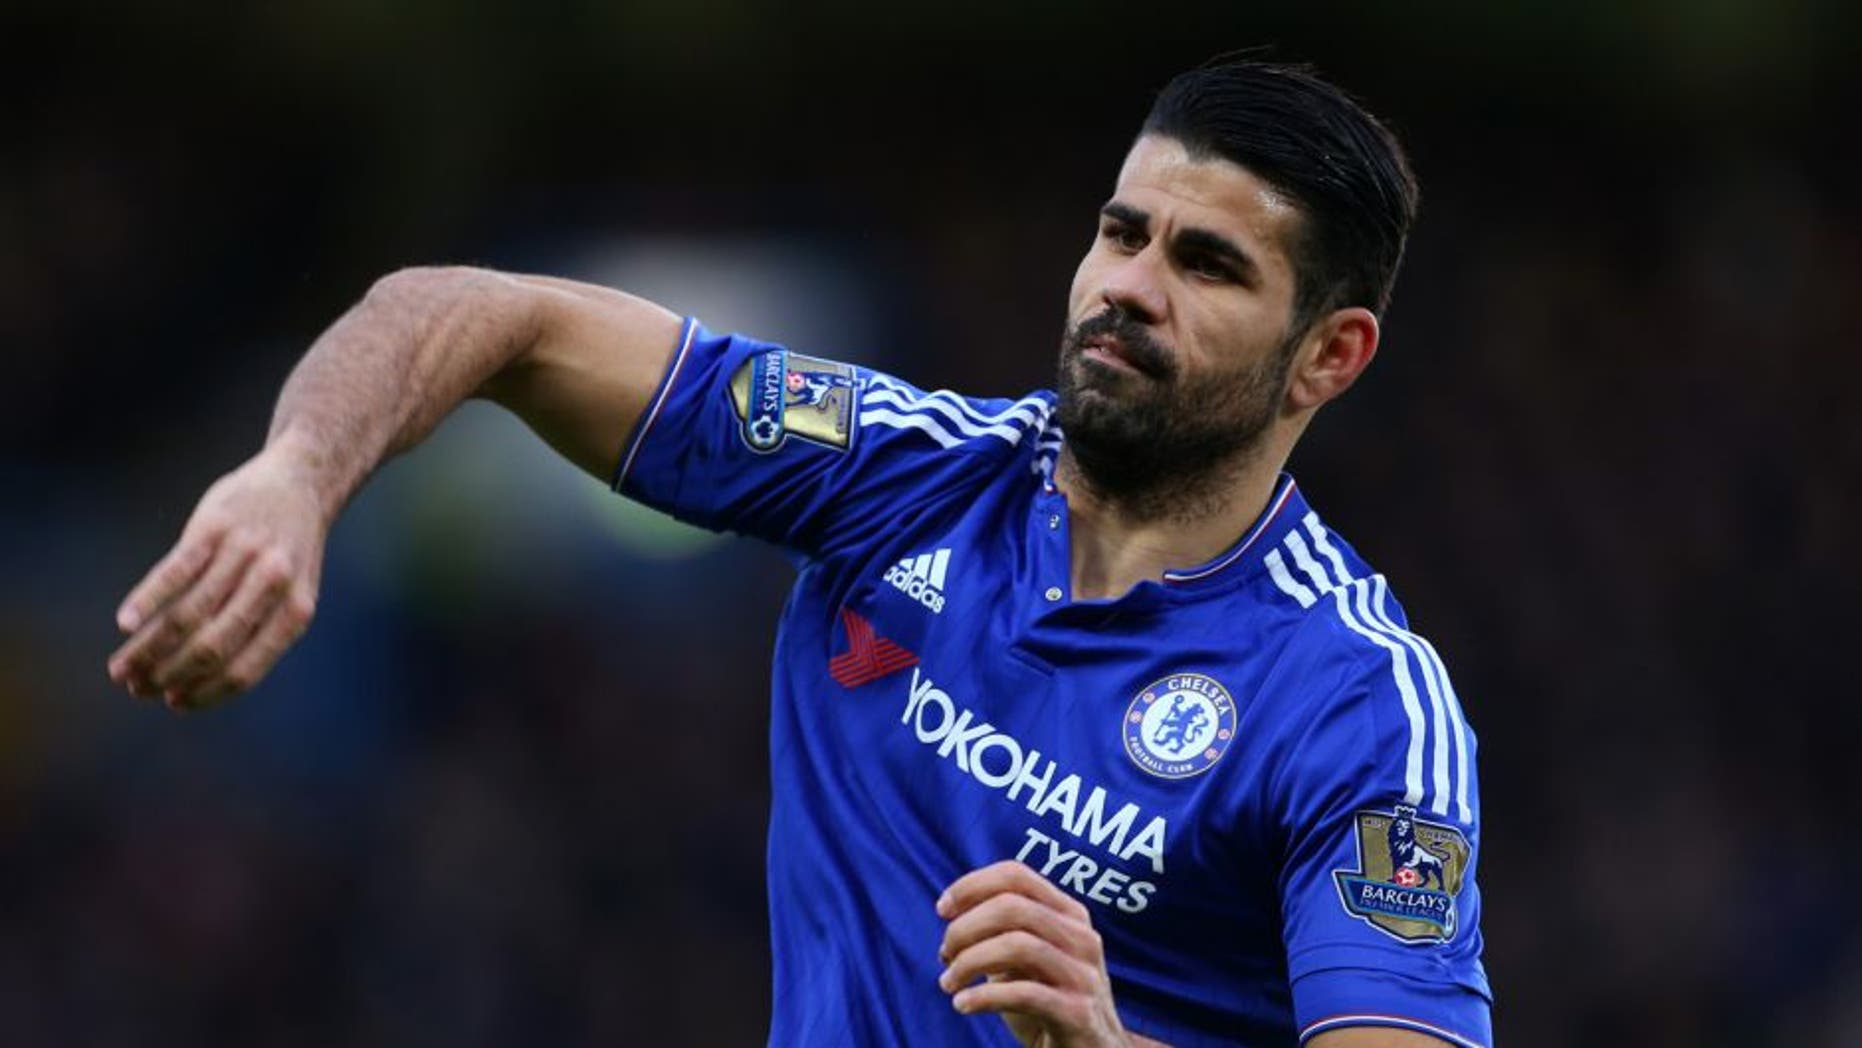 LONDON, ENGLAND - FEBRUARY 07 : Diego Costa of Chelsea during the Barclays Premier League match between Chelsea and Manchester United at Stamford Bridge on February 7, 2016 in London, England. (Photo by Catherine Ivill - AMA/Getty Images)